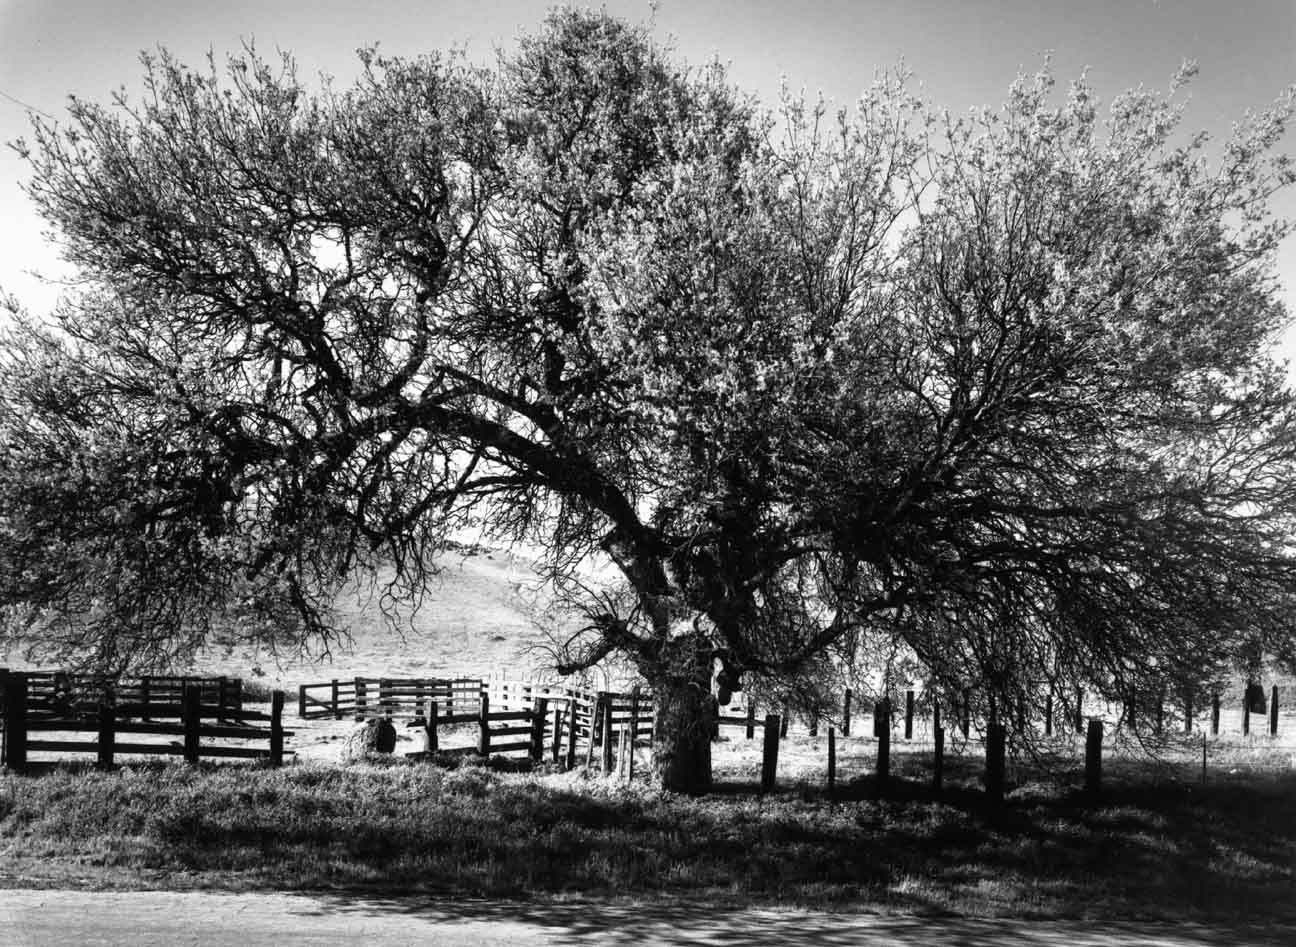 Oak & Cattle Fence #2